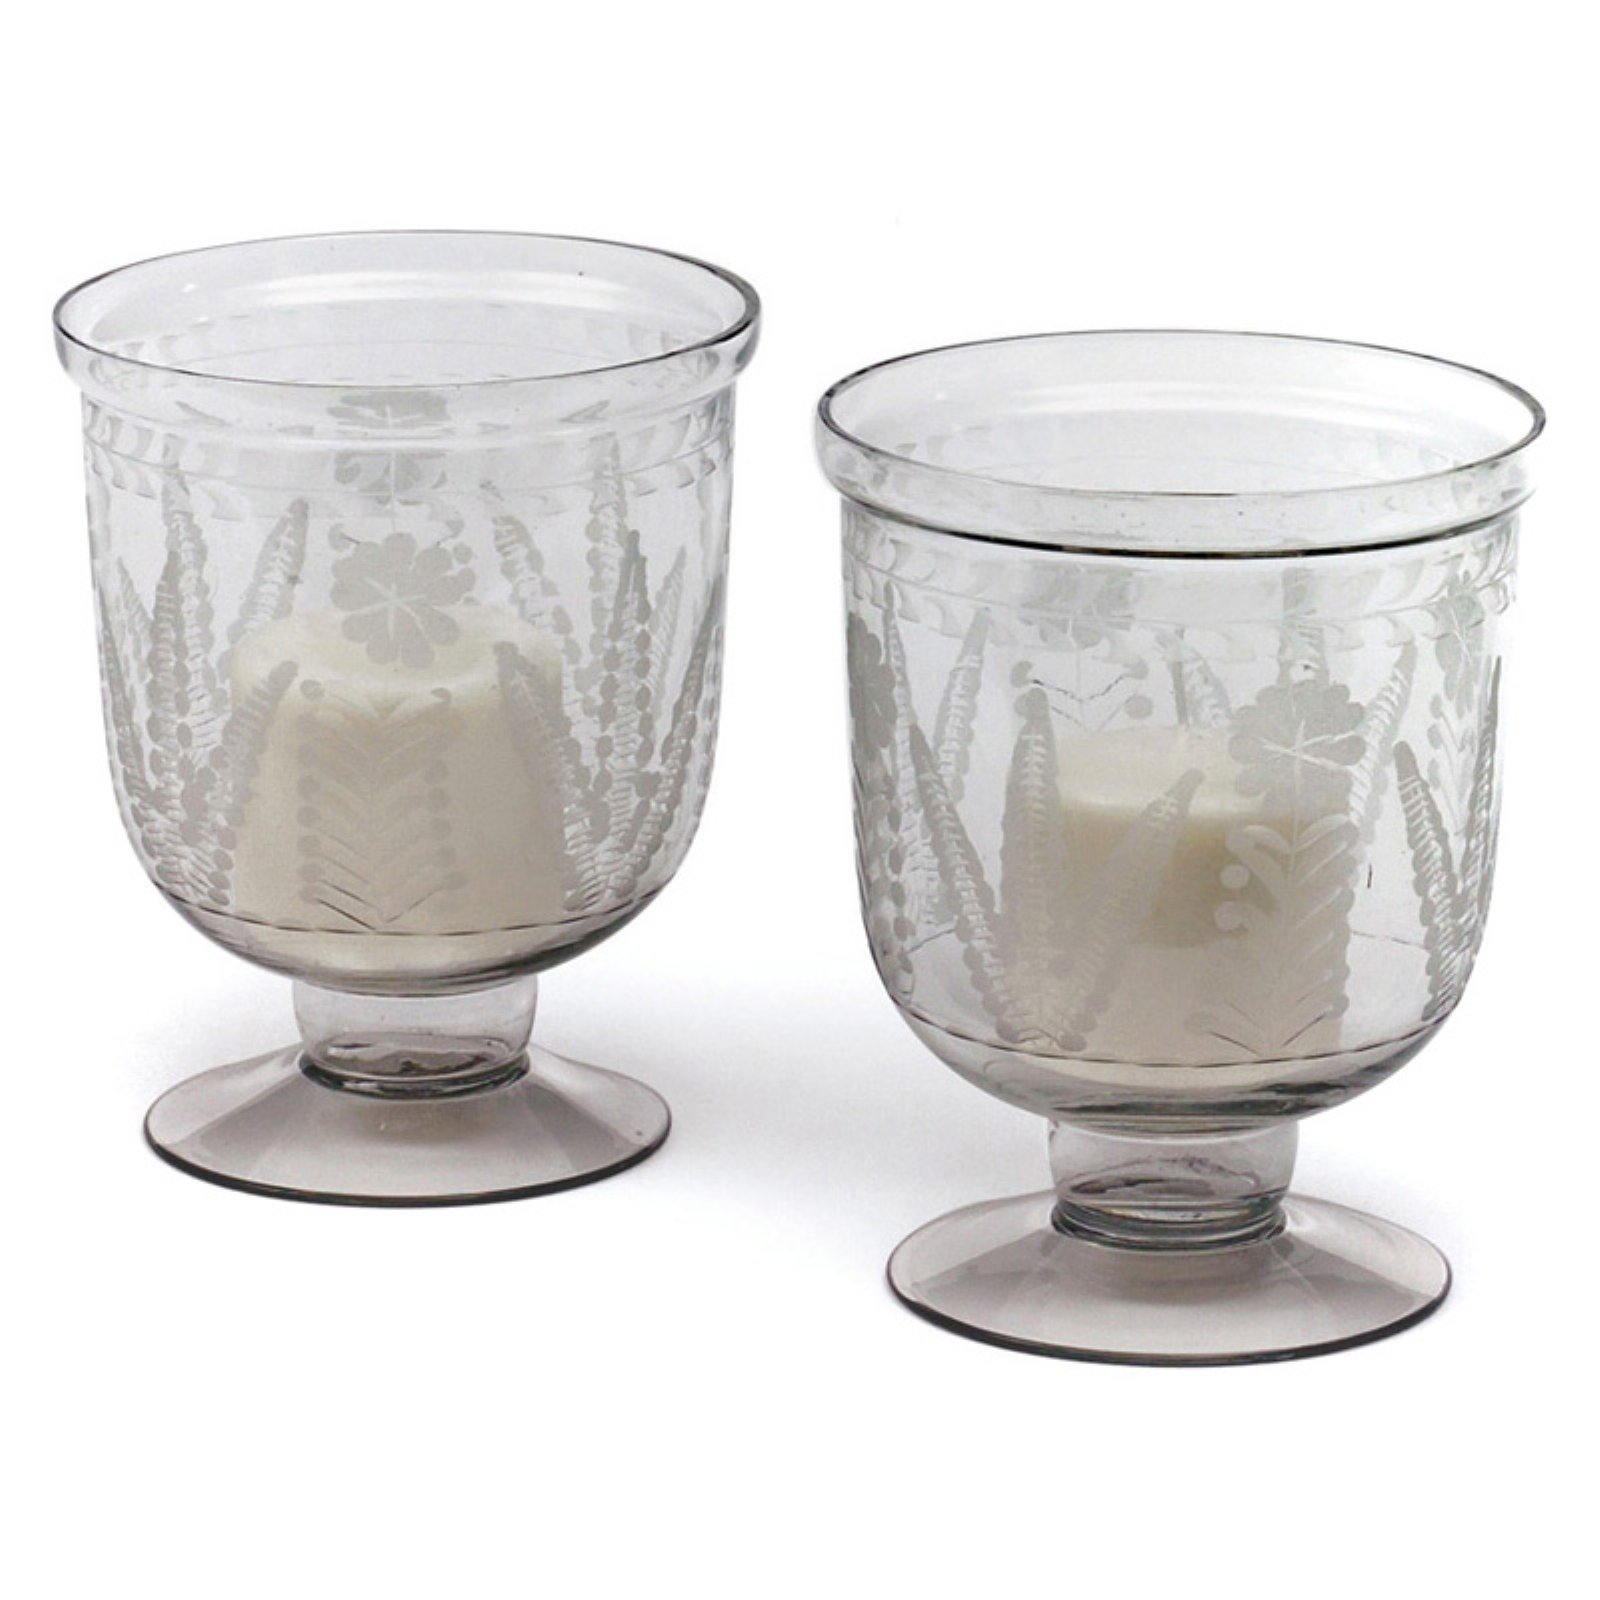 Hip Vintage Grasse Hurricane Candle Holder - Set of 2